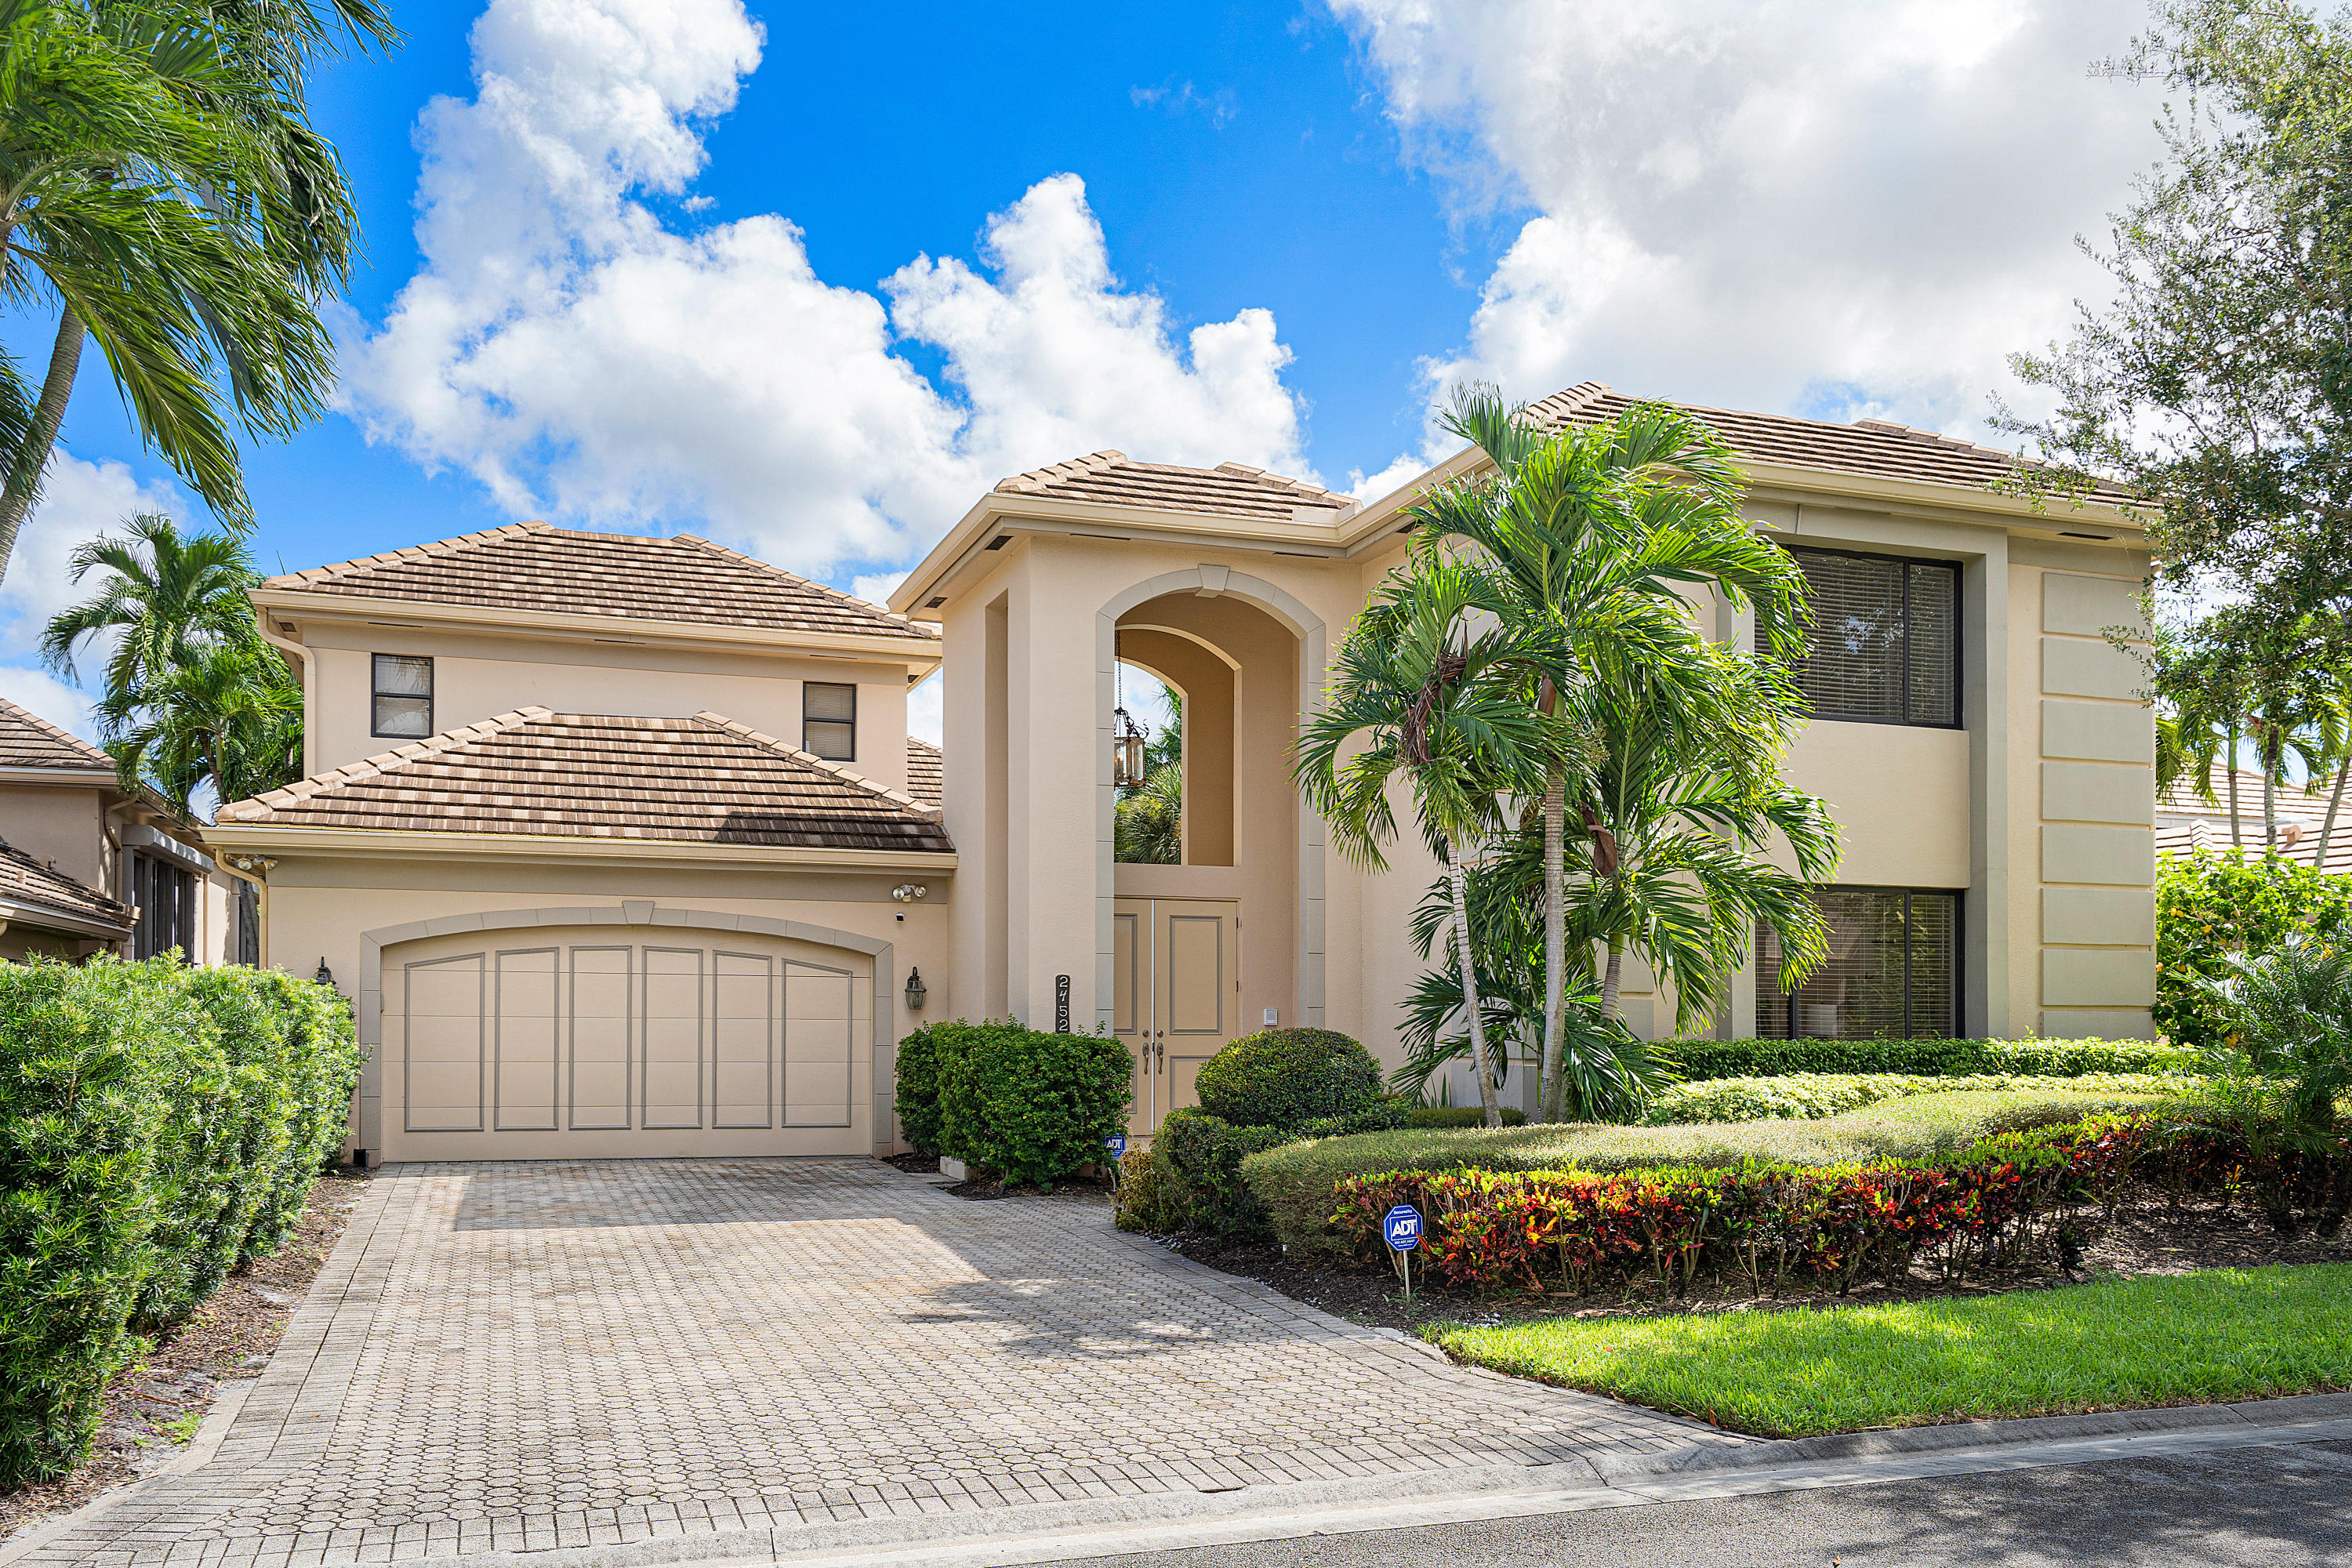 2452 62nd Street, Boca Raton, Florida 33496, 6 Bedrooms Bedrooms, ,6 BathroomsBathrooms,Residential,For Sale,62nd,RX-10560840